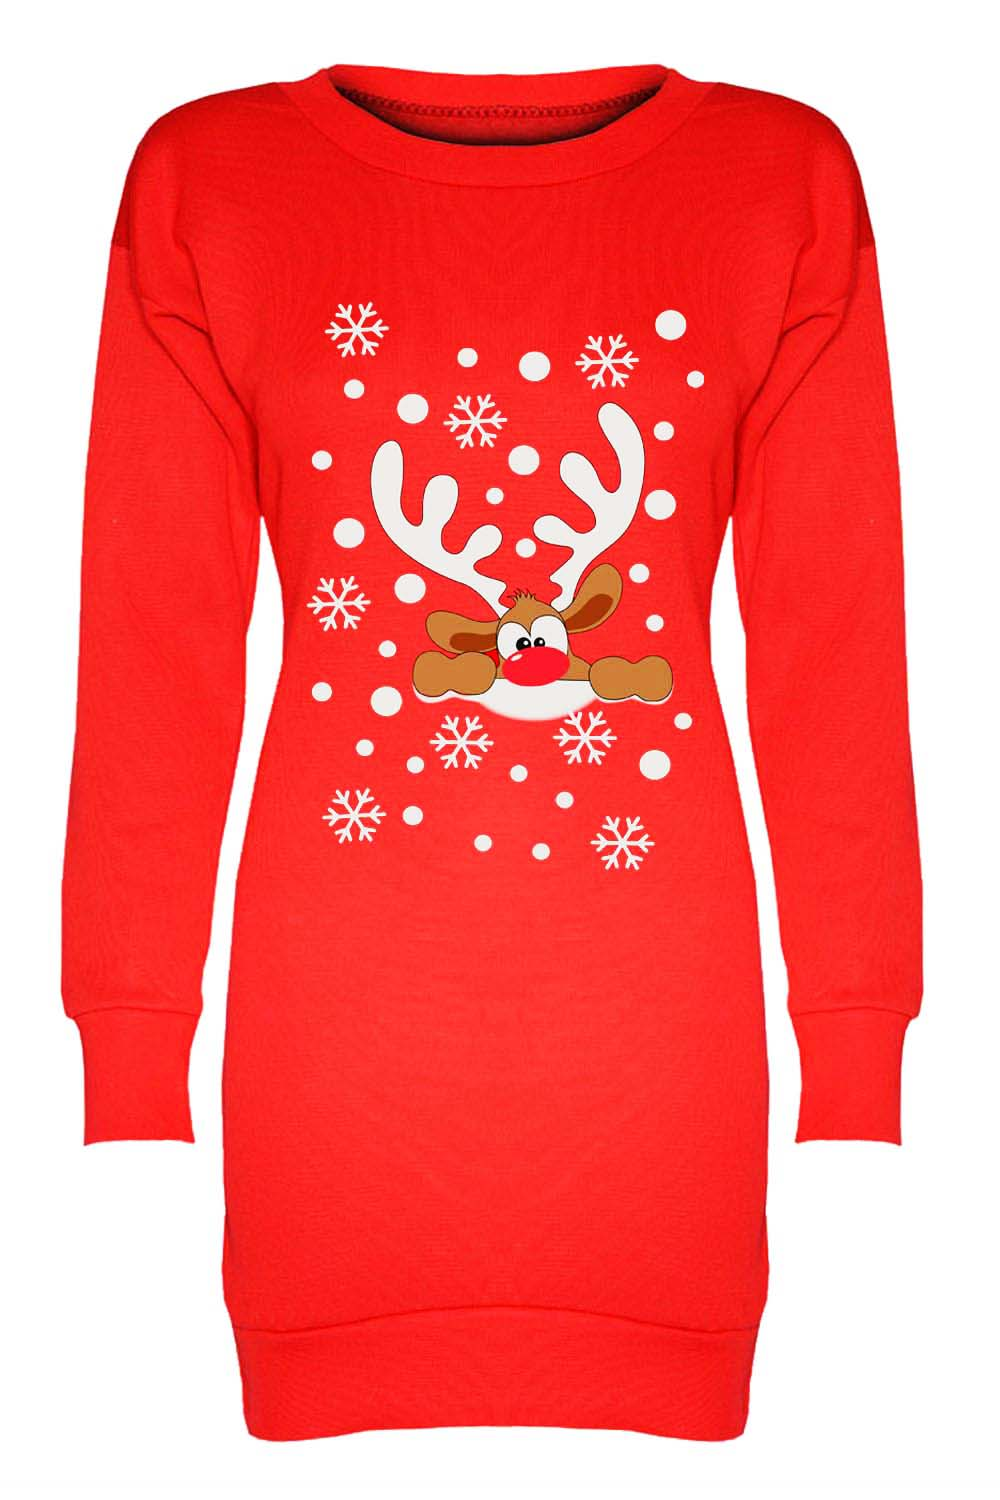 Reindeer Graphic Print Christmas Jumper Dress